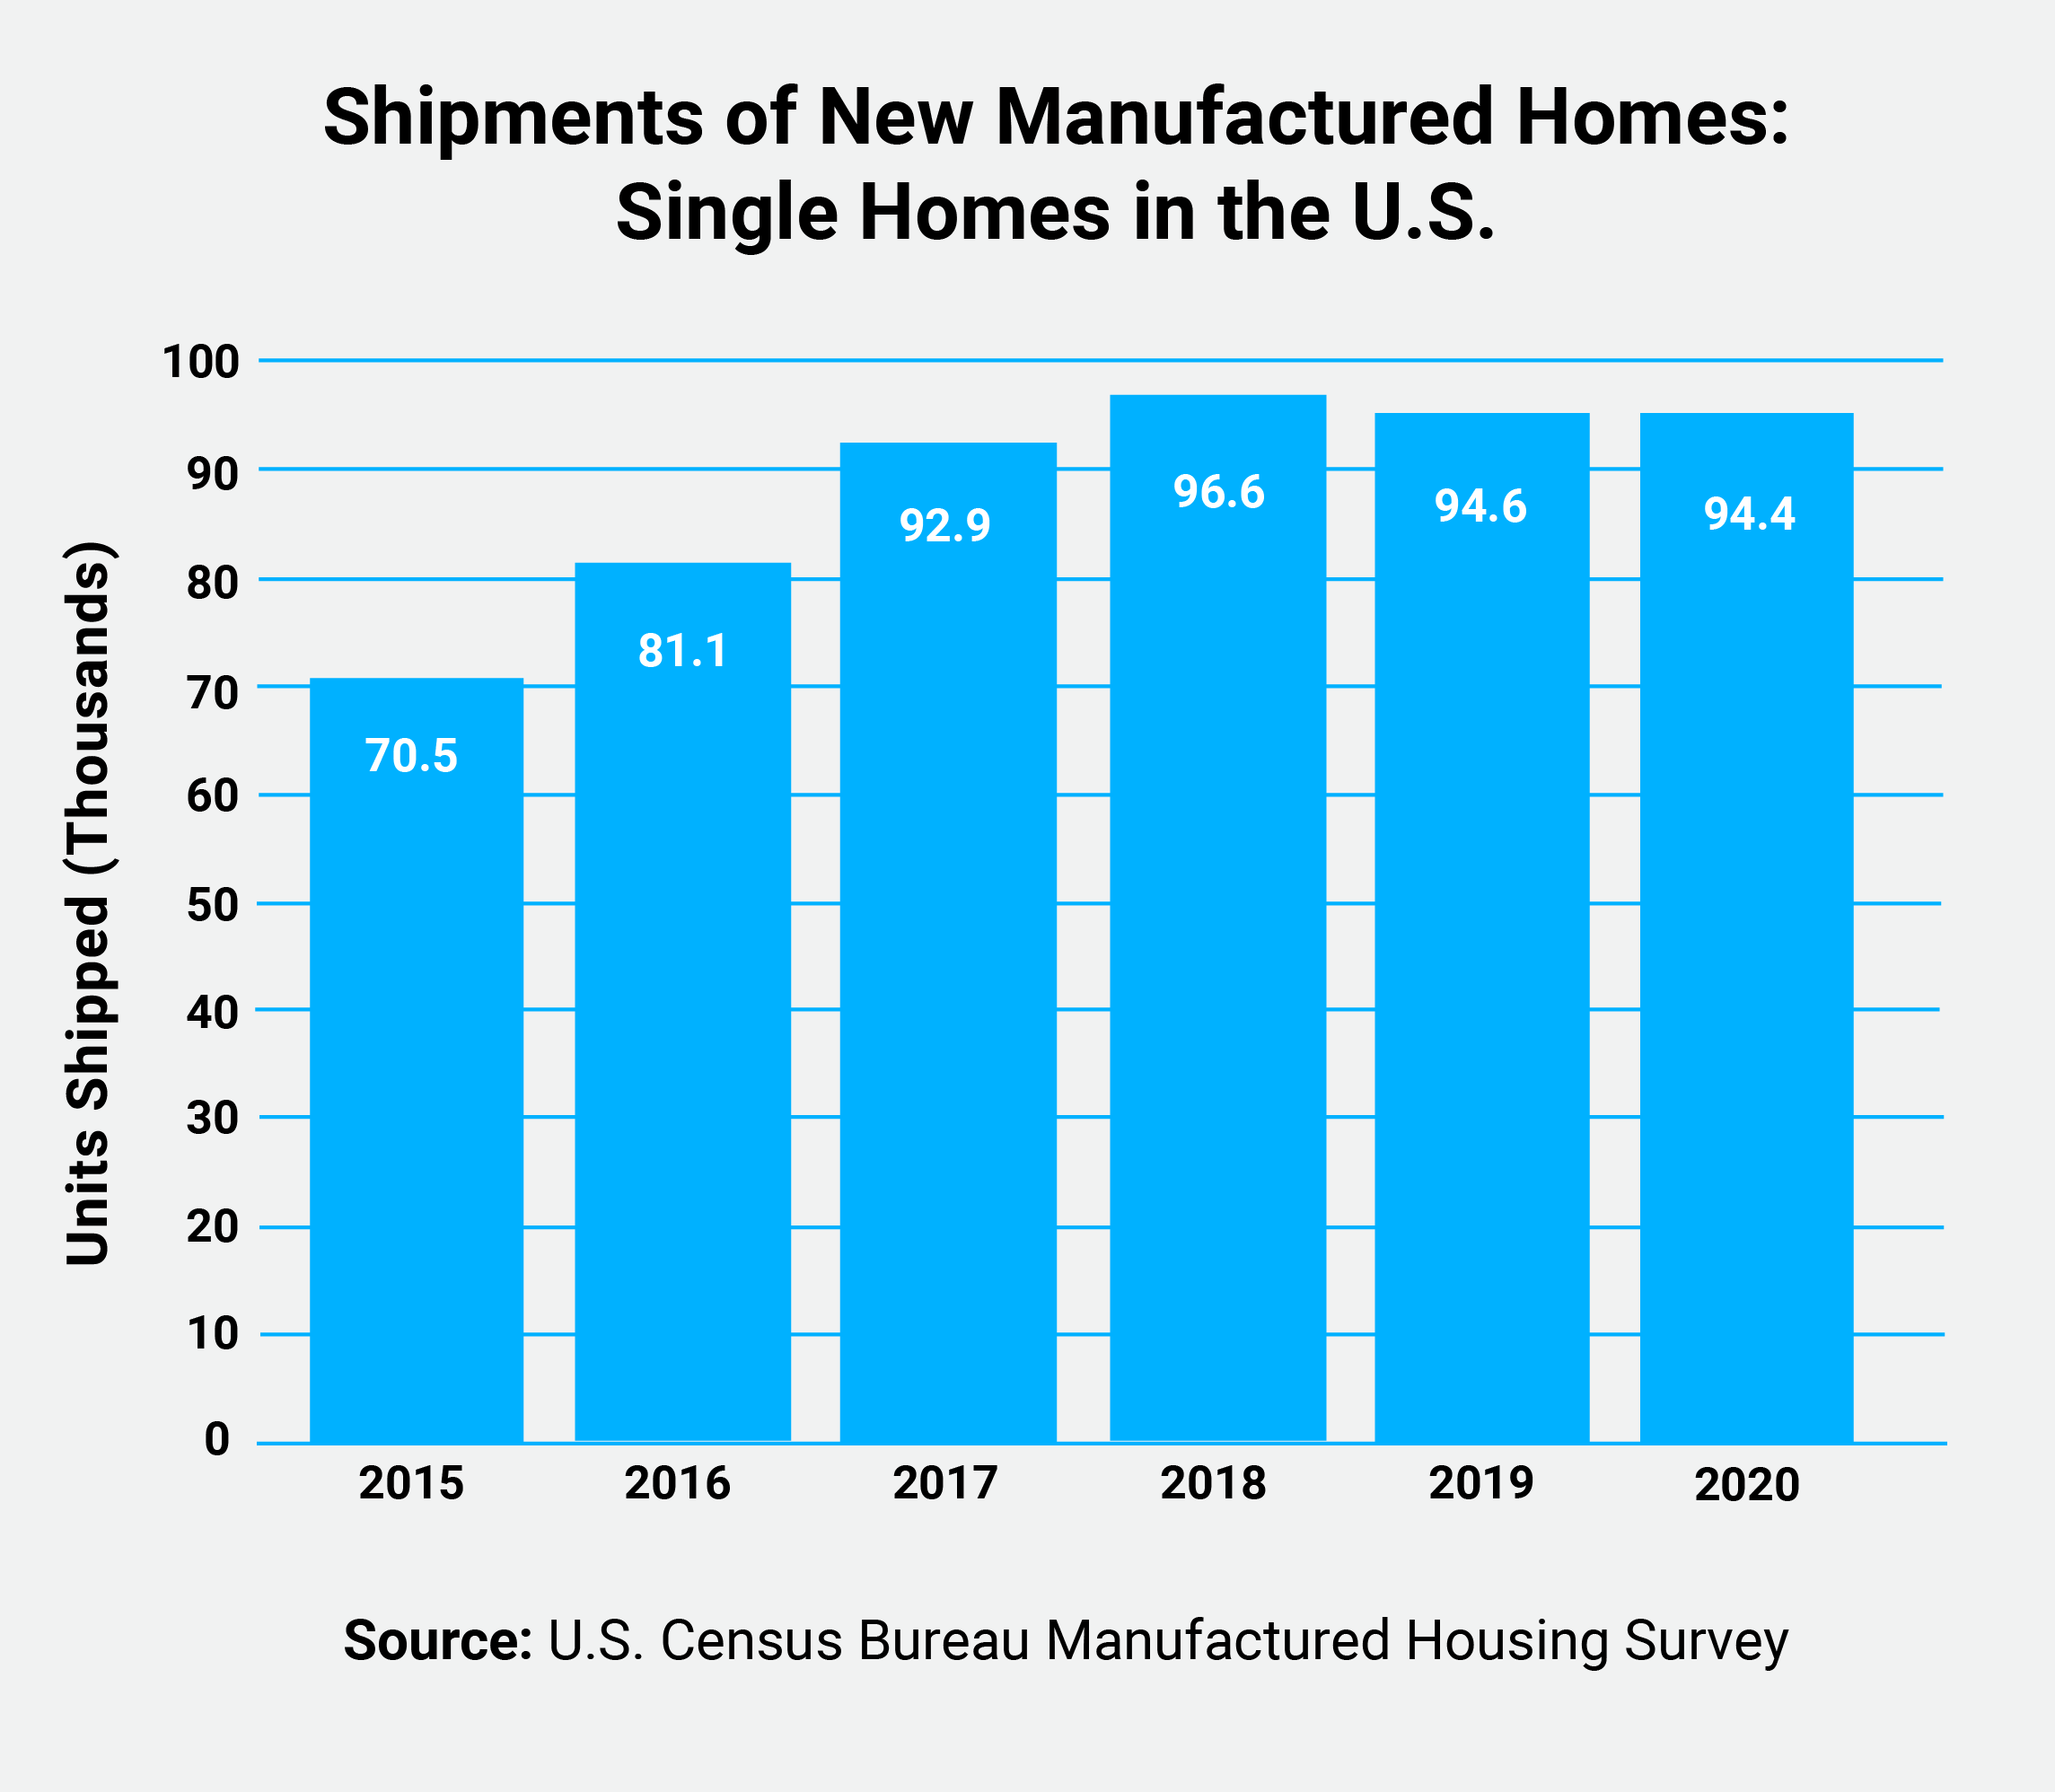 shipments of new manufactured homes